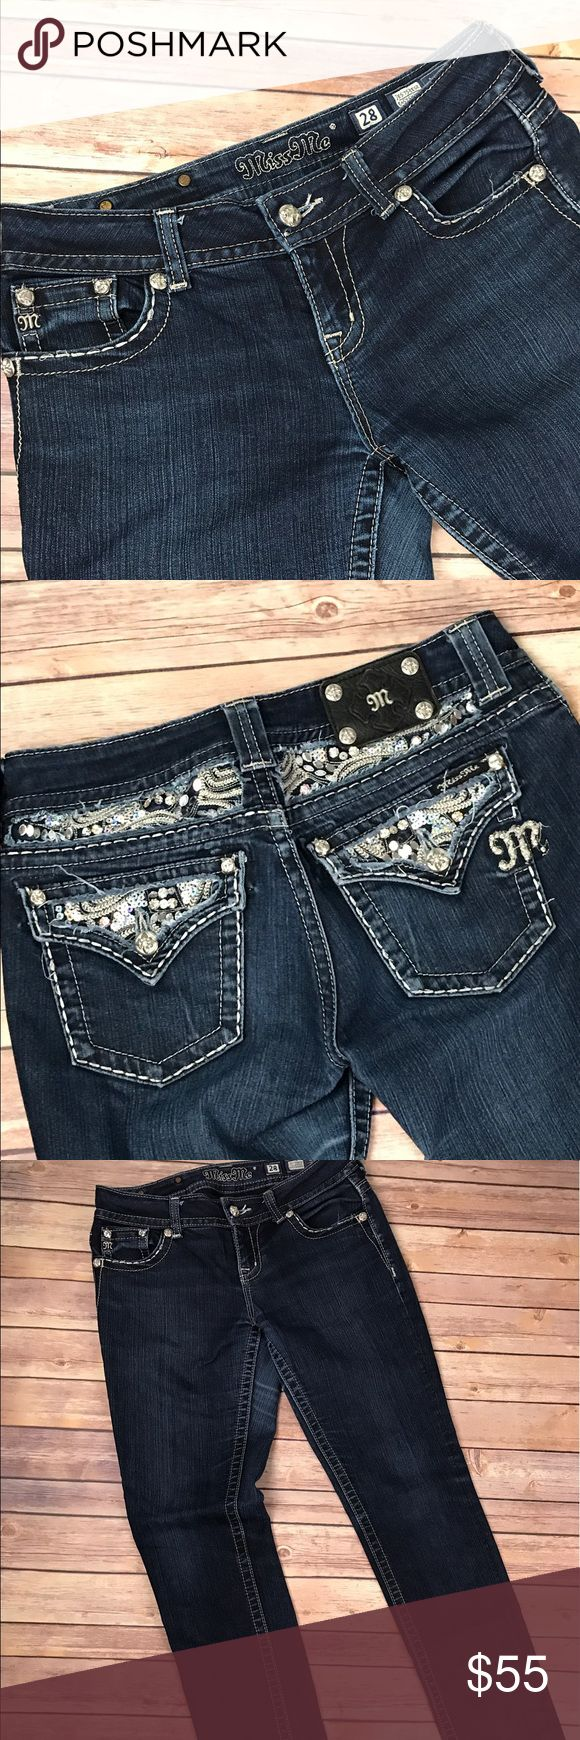 """Miss Me Jeans Size 28 Easy Skinny Miss Me Jeans Size 28 Easy Skinny. These Jeans are in excellent condition!!!! It has a 31"""" inseam Miss Me Jeans Skinny"""